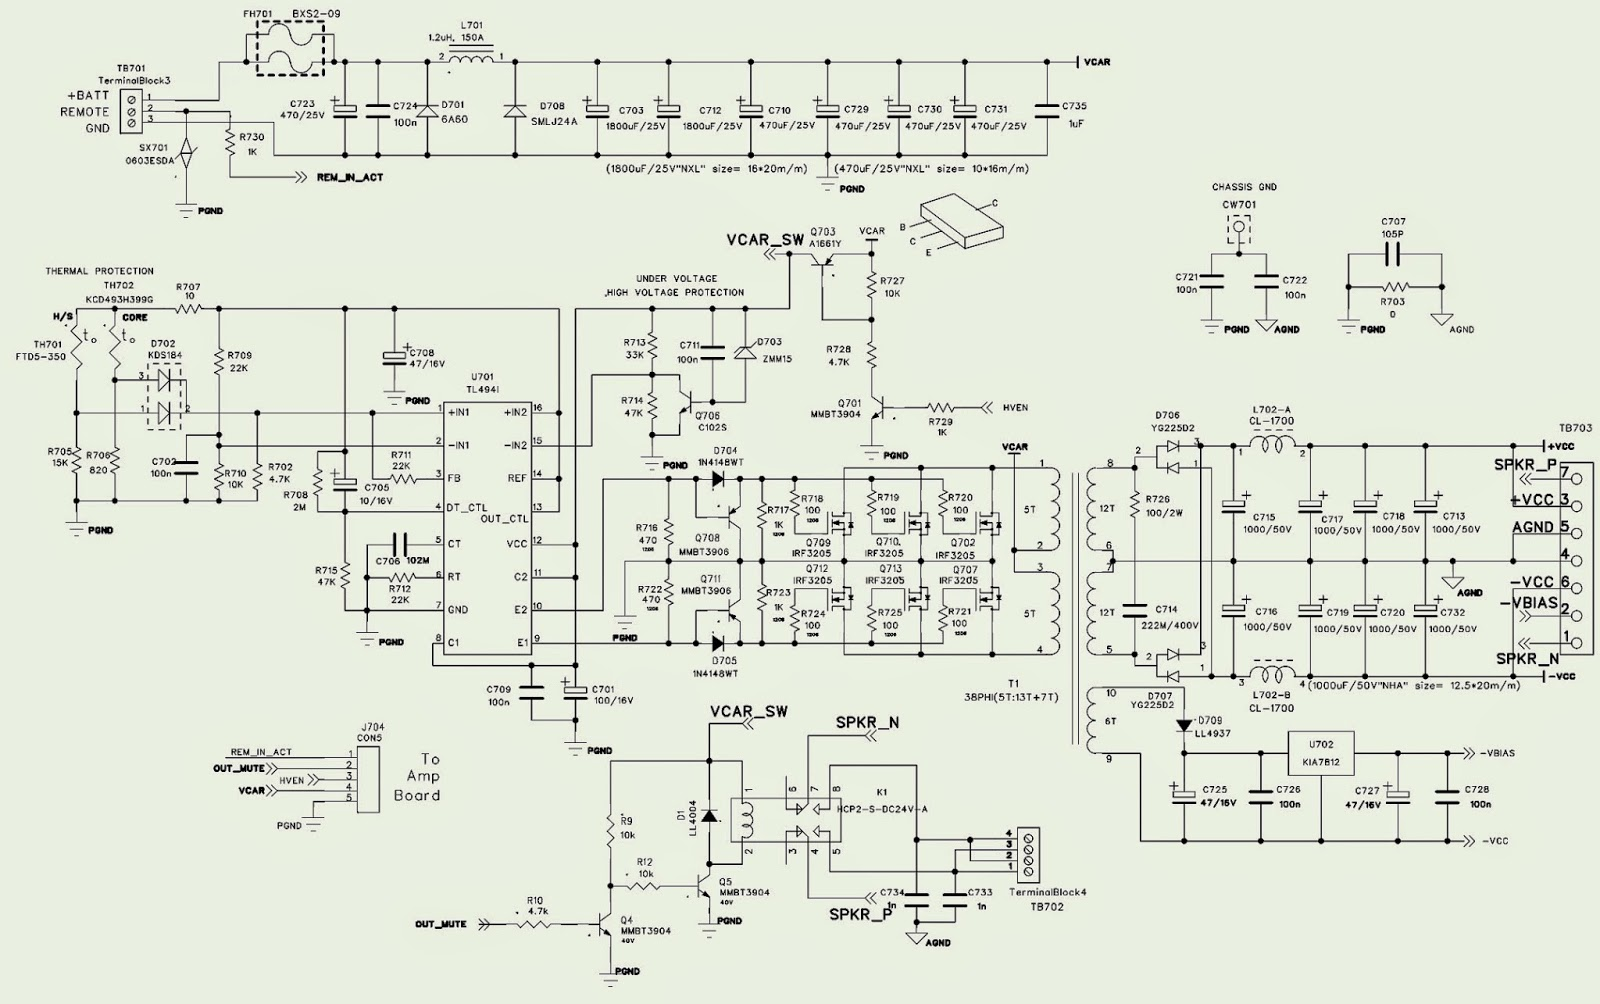 usb power schematic wiring diagram center power amp schematic smps schematic click on the schematics to [ 1600 x 1004 Pixel ]